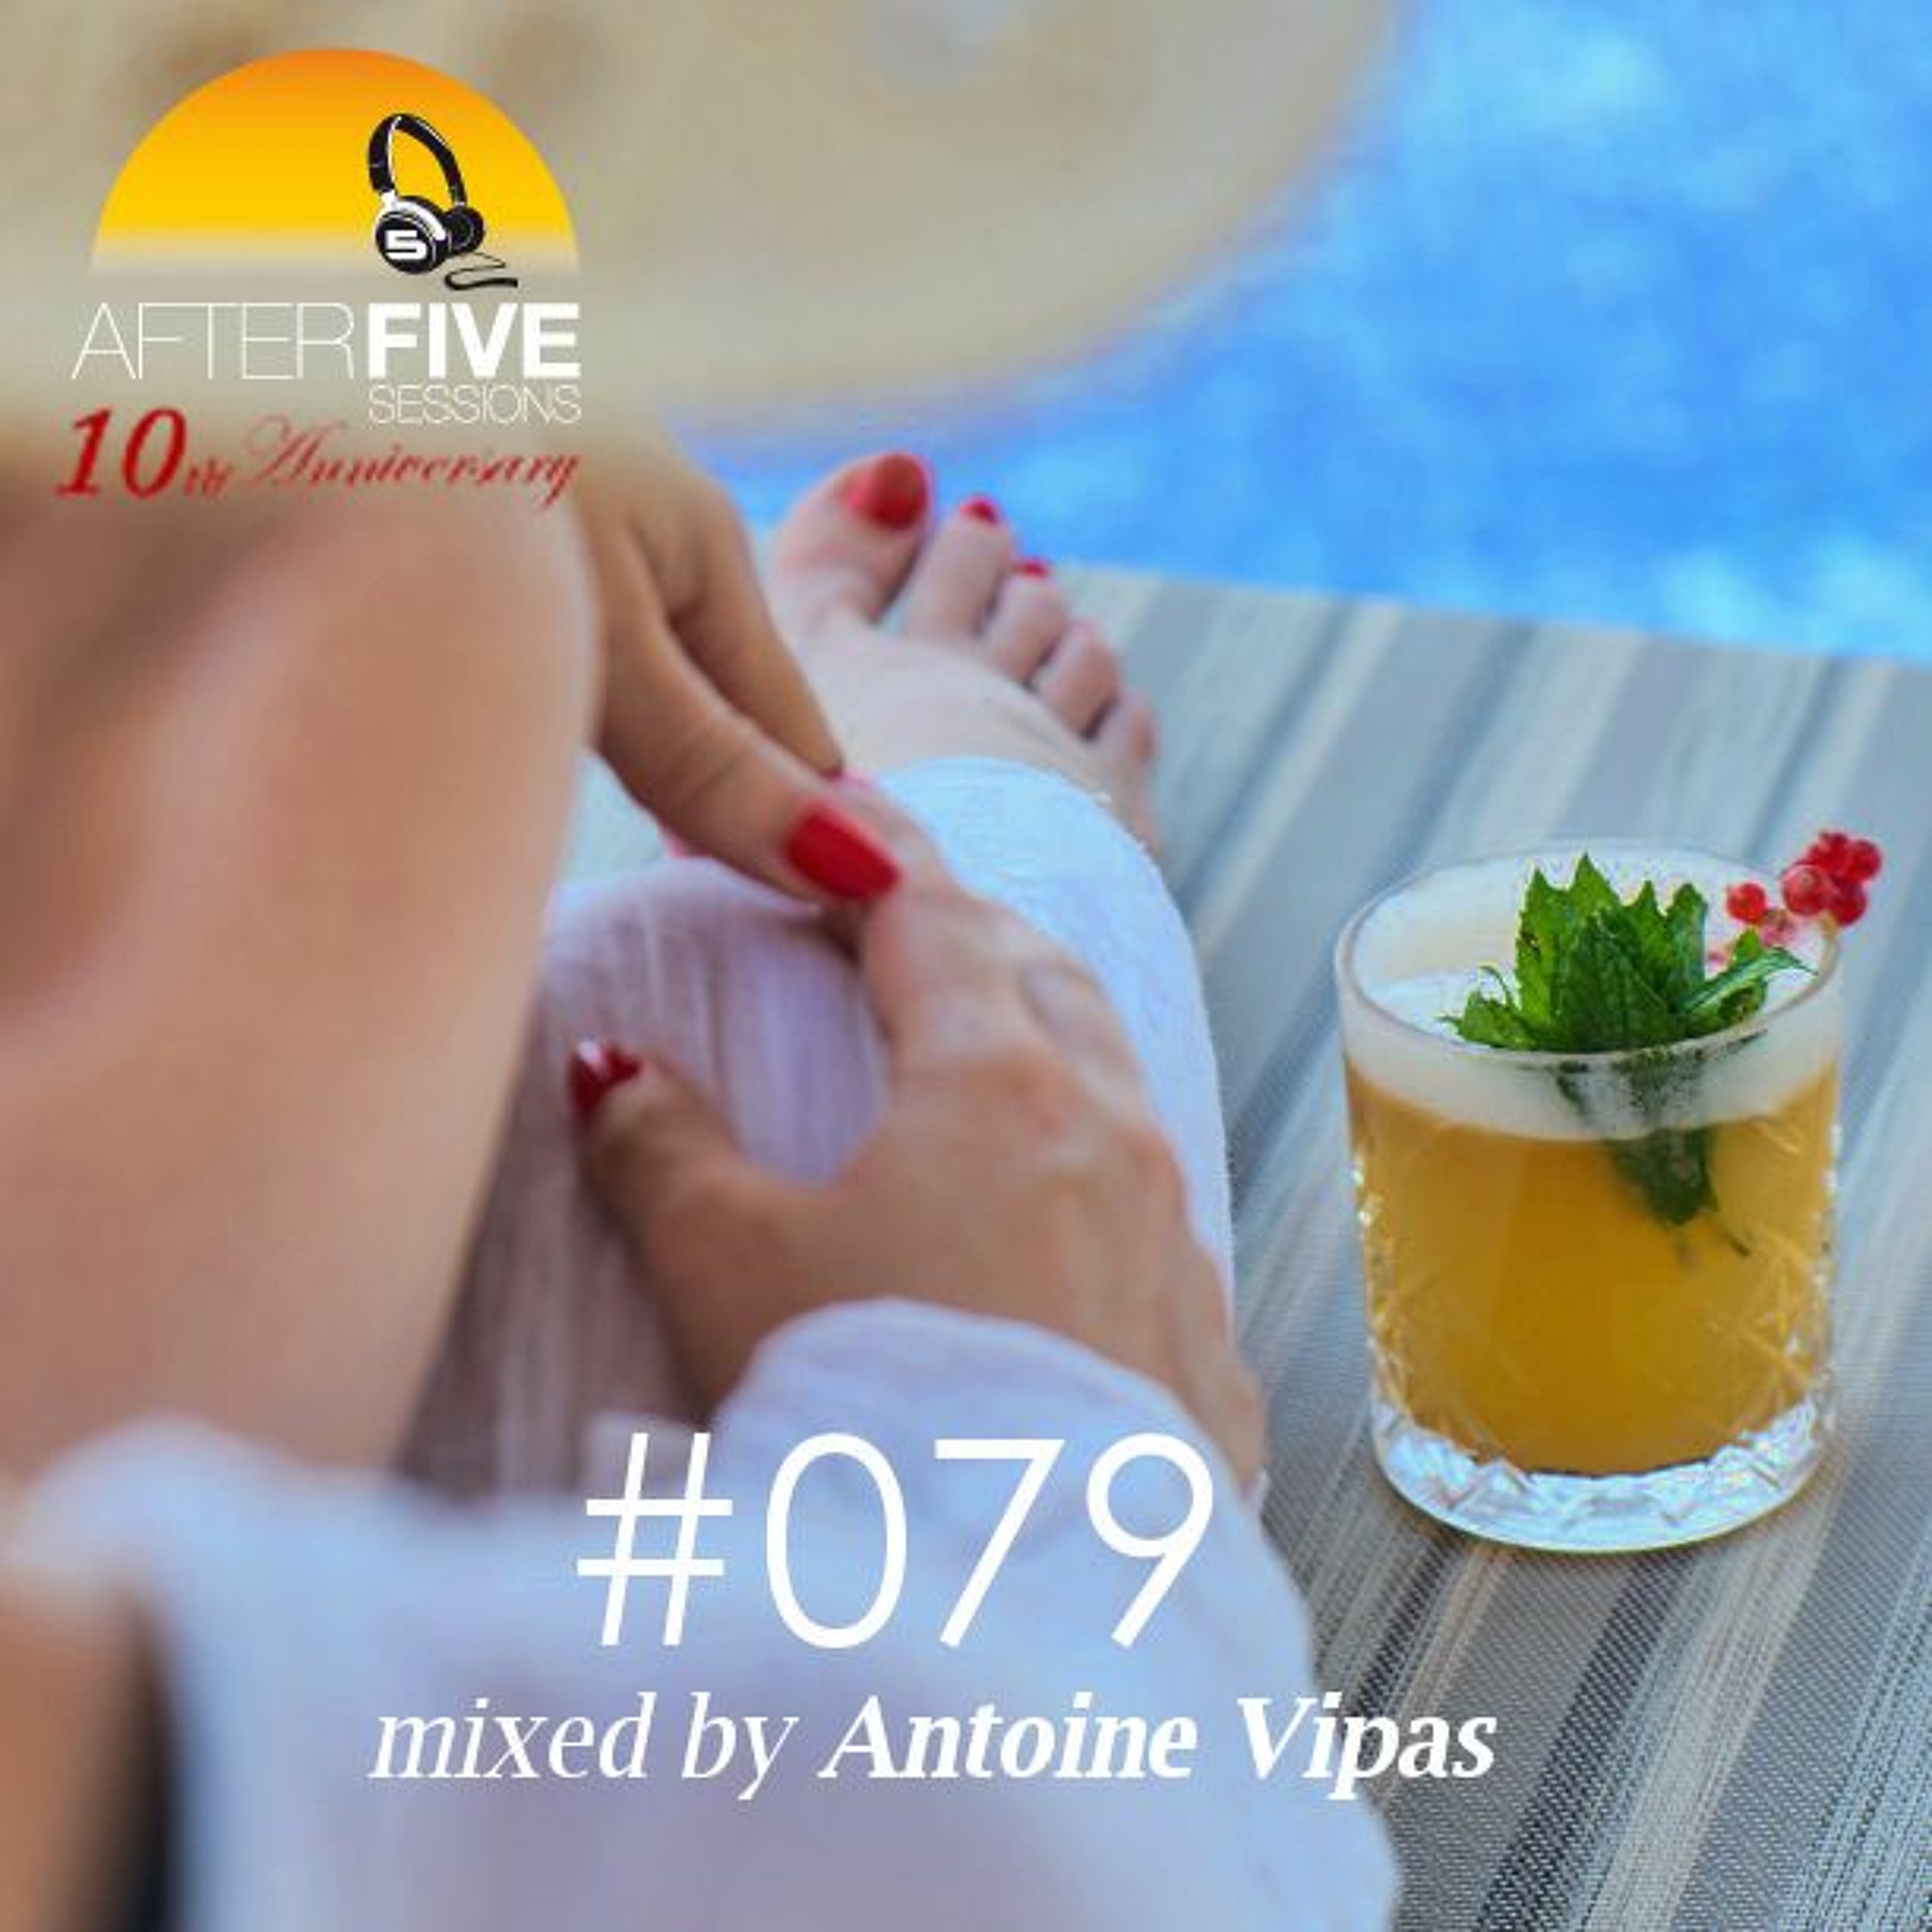 Episode 79 mixed by Antoine Vipas